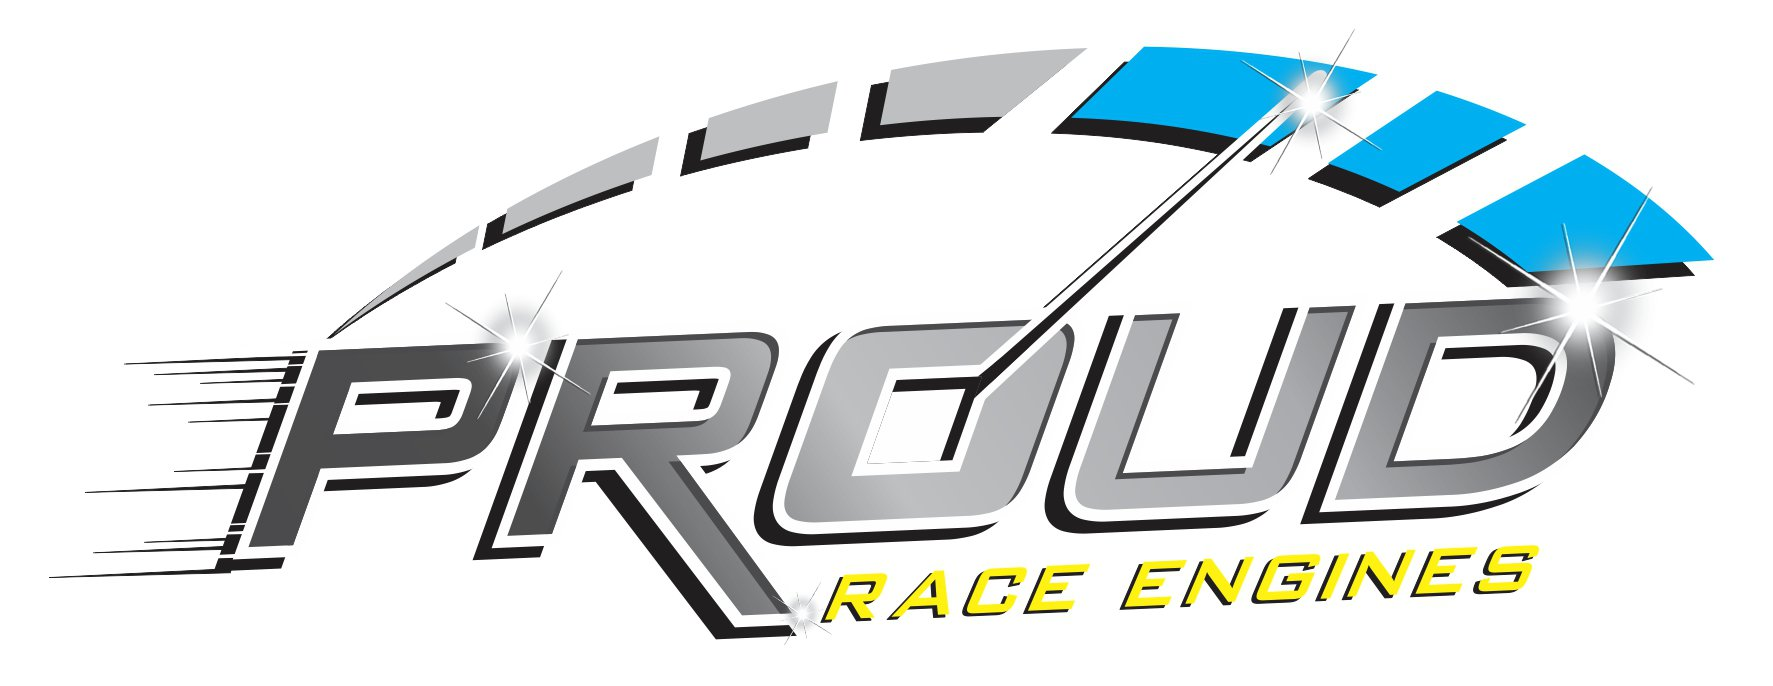 Racing clipart proud Graphics & Signwriting Graphics Engines